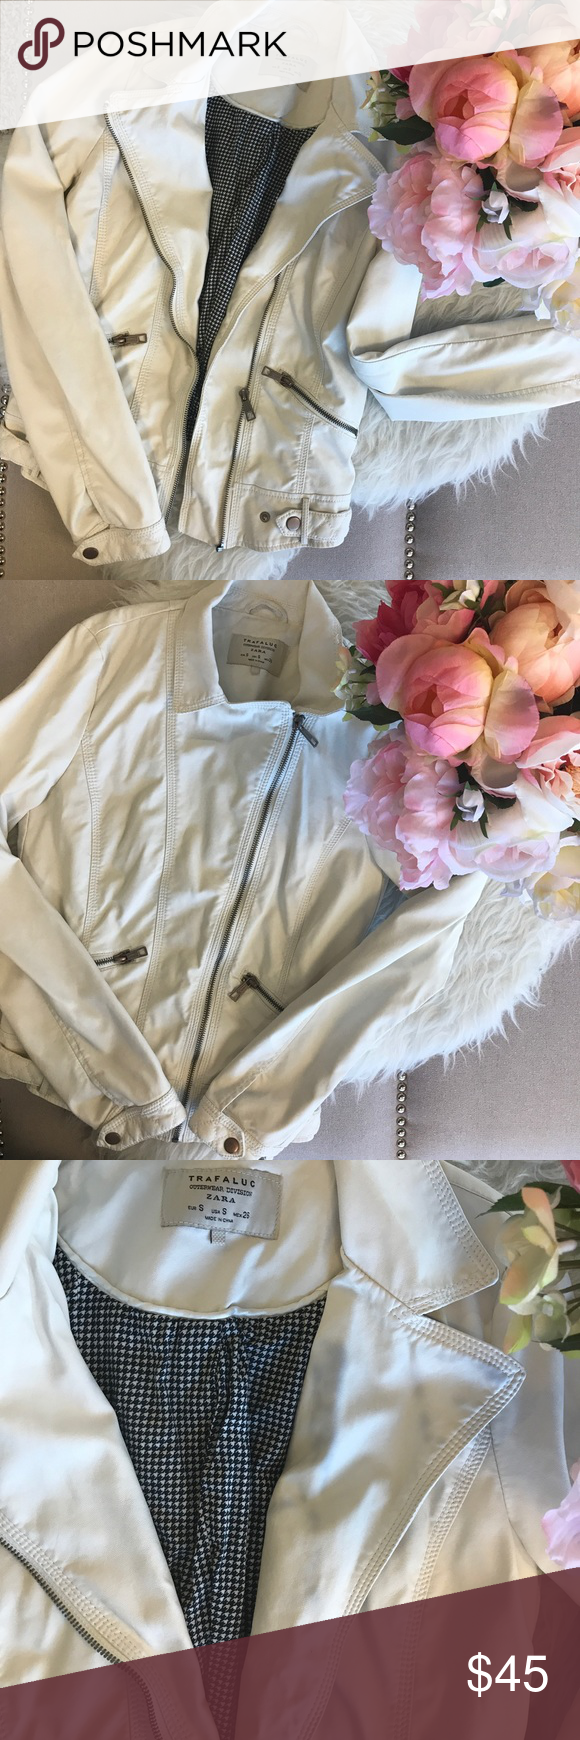 Zara Trafaluc white faux leather biker jacket White faux